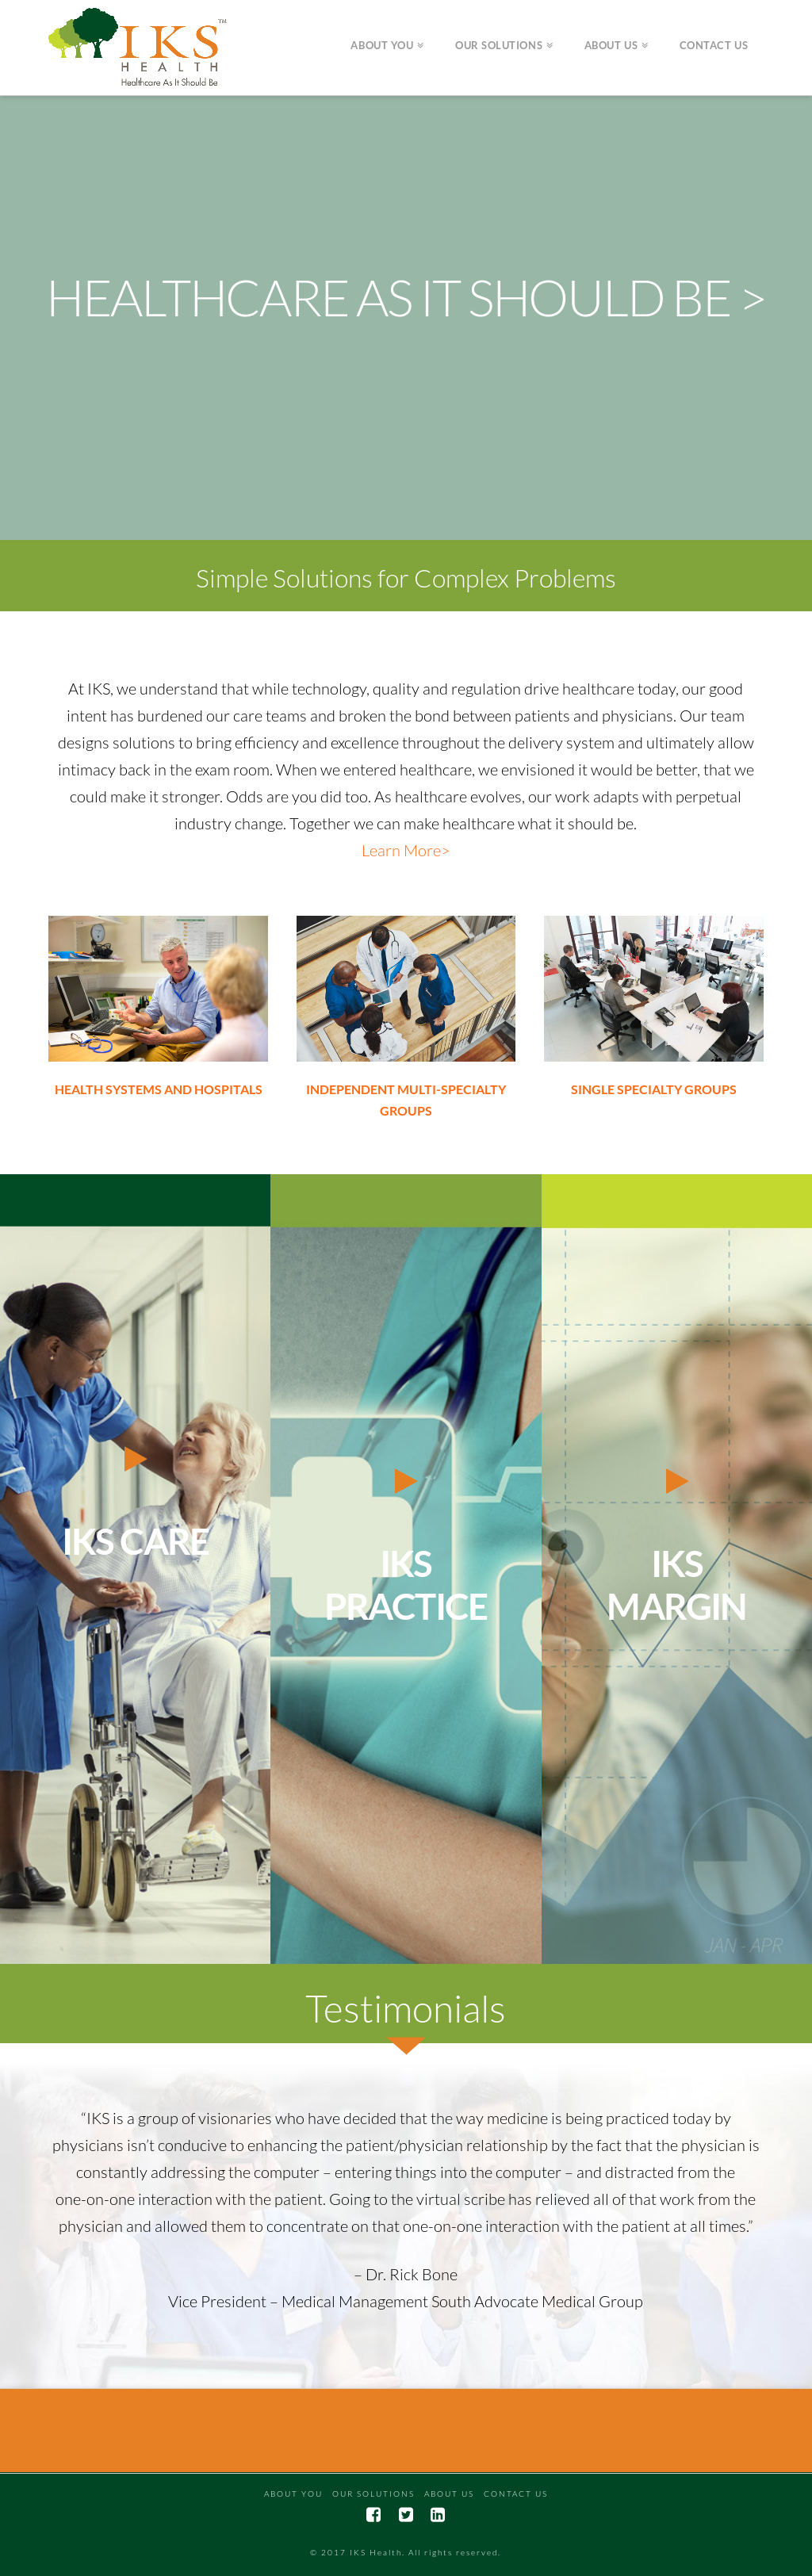 Owler Reports - IKS Health: UAB Medicine to Deploy Scribble